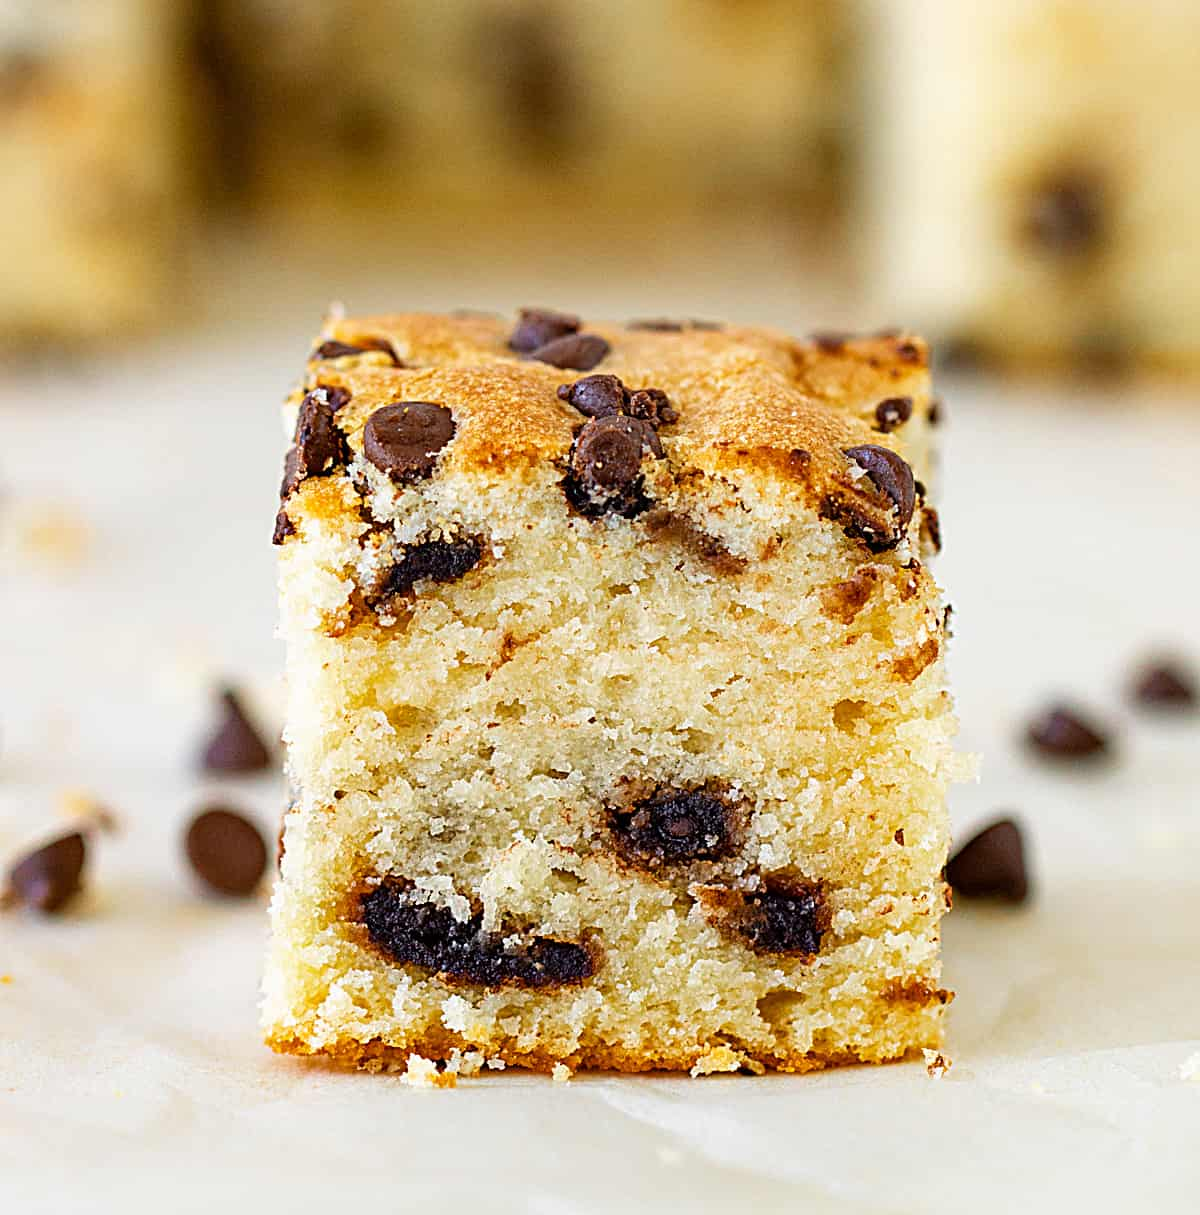 Frontal image of a vanilla cake square studded with chocolate chips on white surface